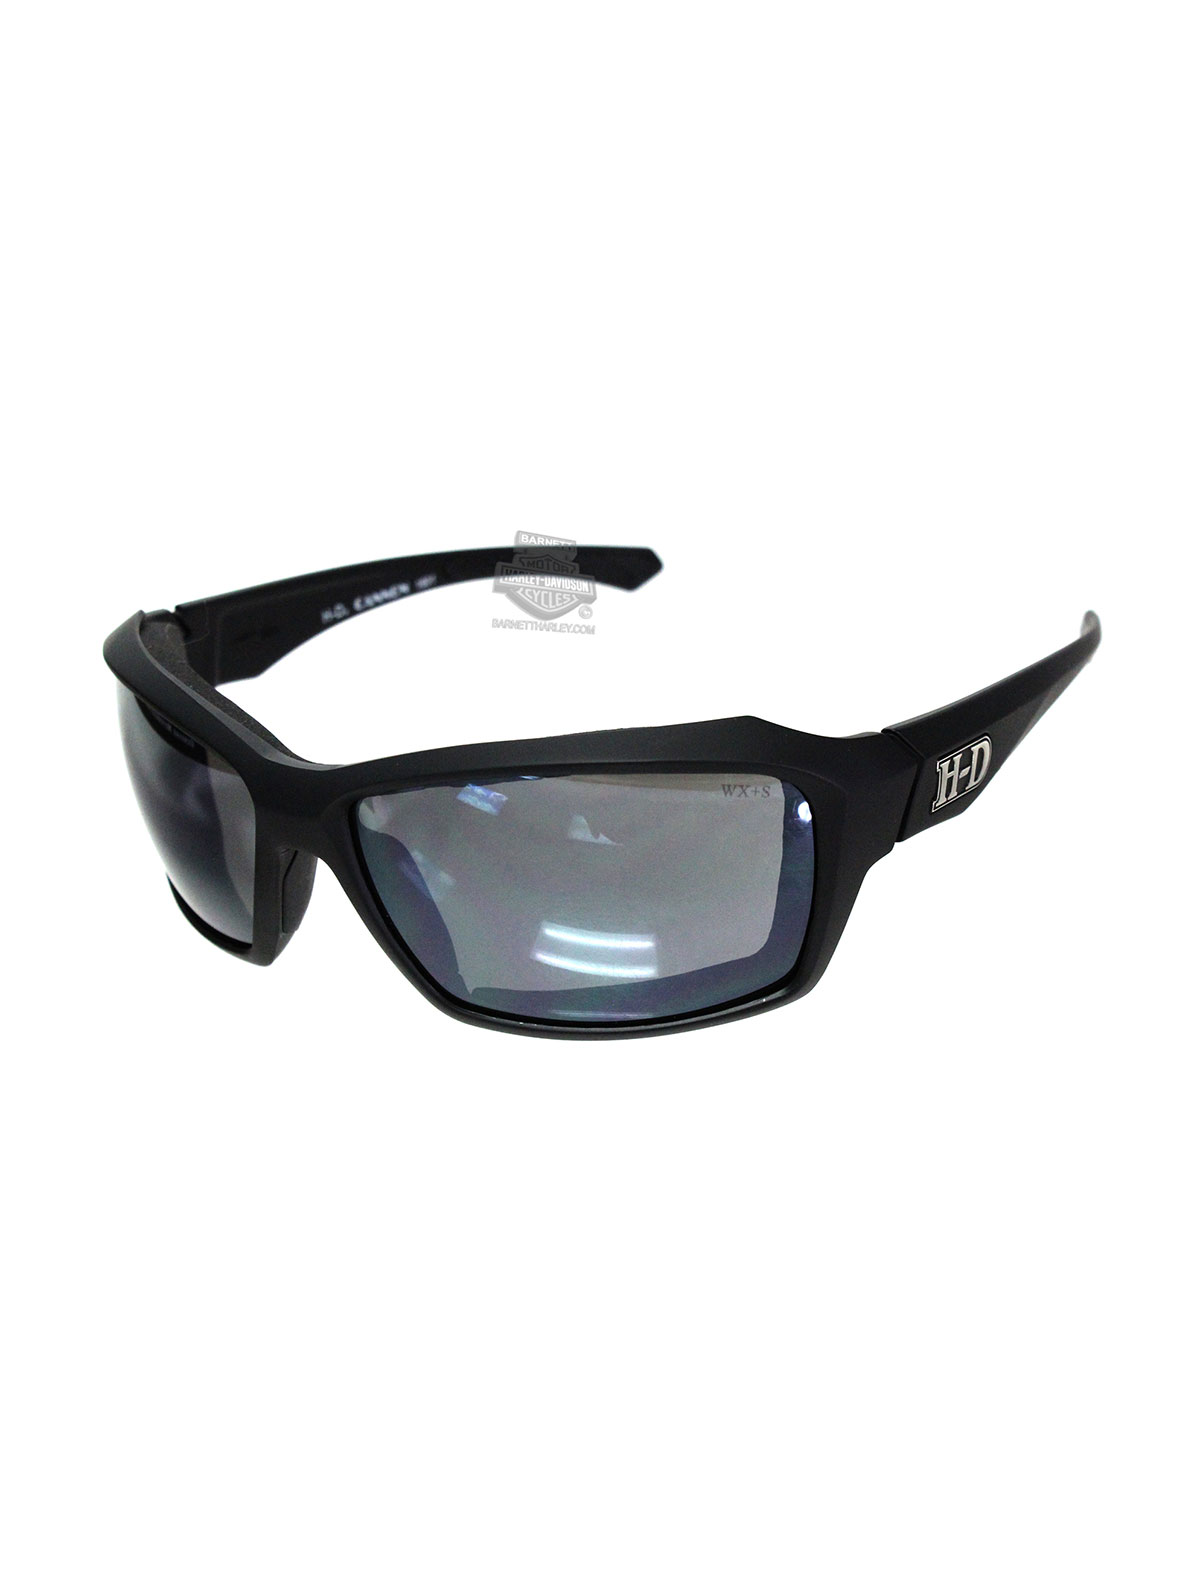 Harley-Davidson® HD Cannon Silver Flash Smoke Grey Lens in a Matte Black Frame Sunglasses by Wiley X®